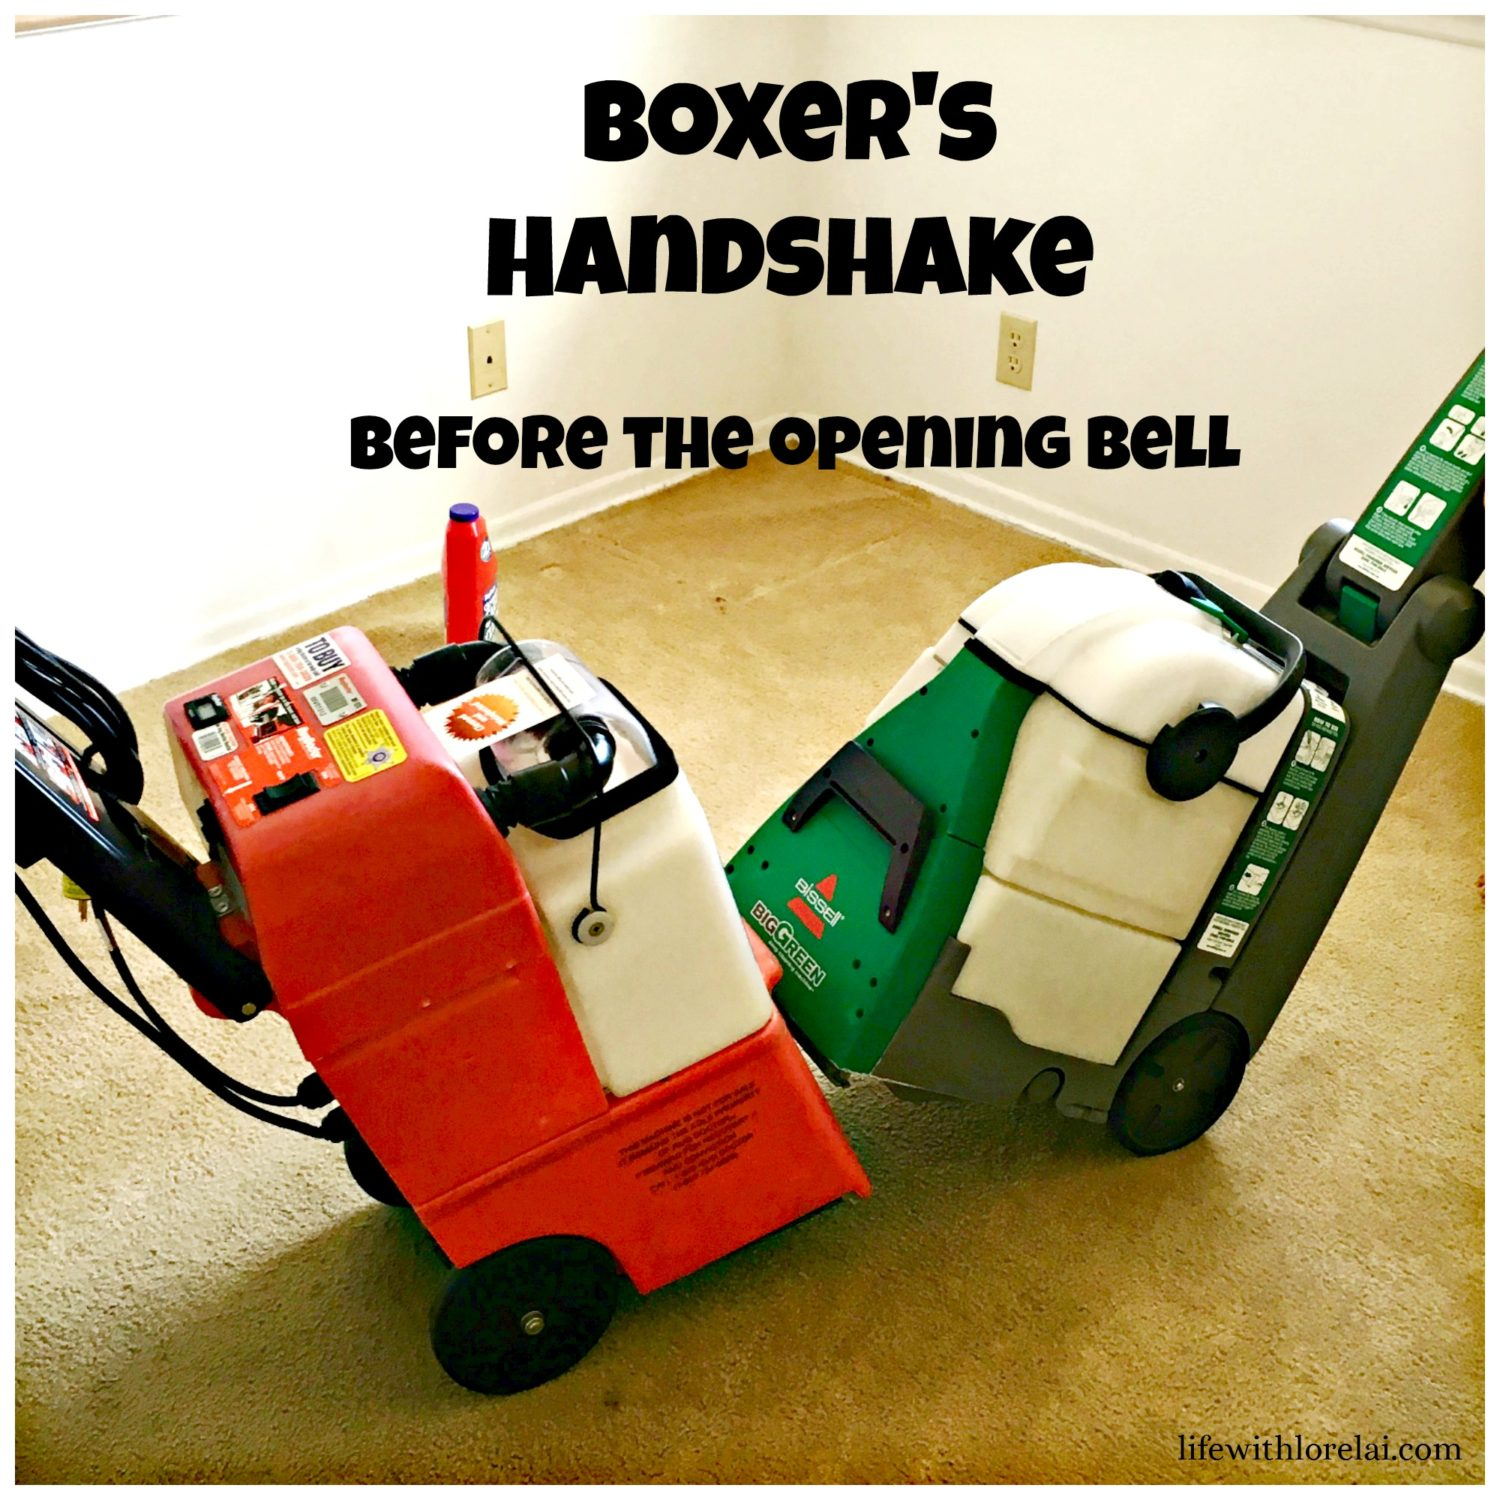 Boxeru0027s Handshake Before Opening Bell BISSELL Big Green